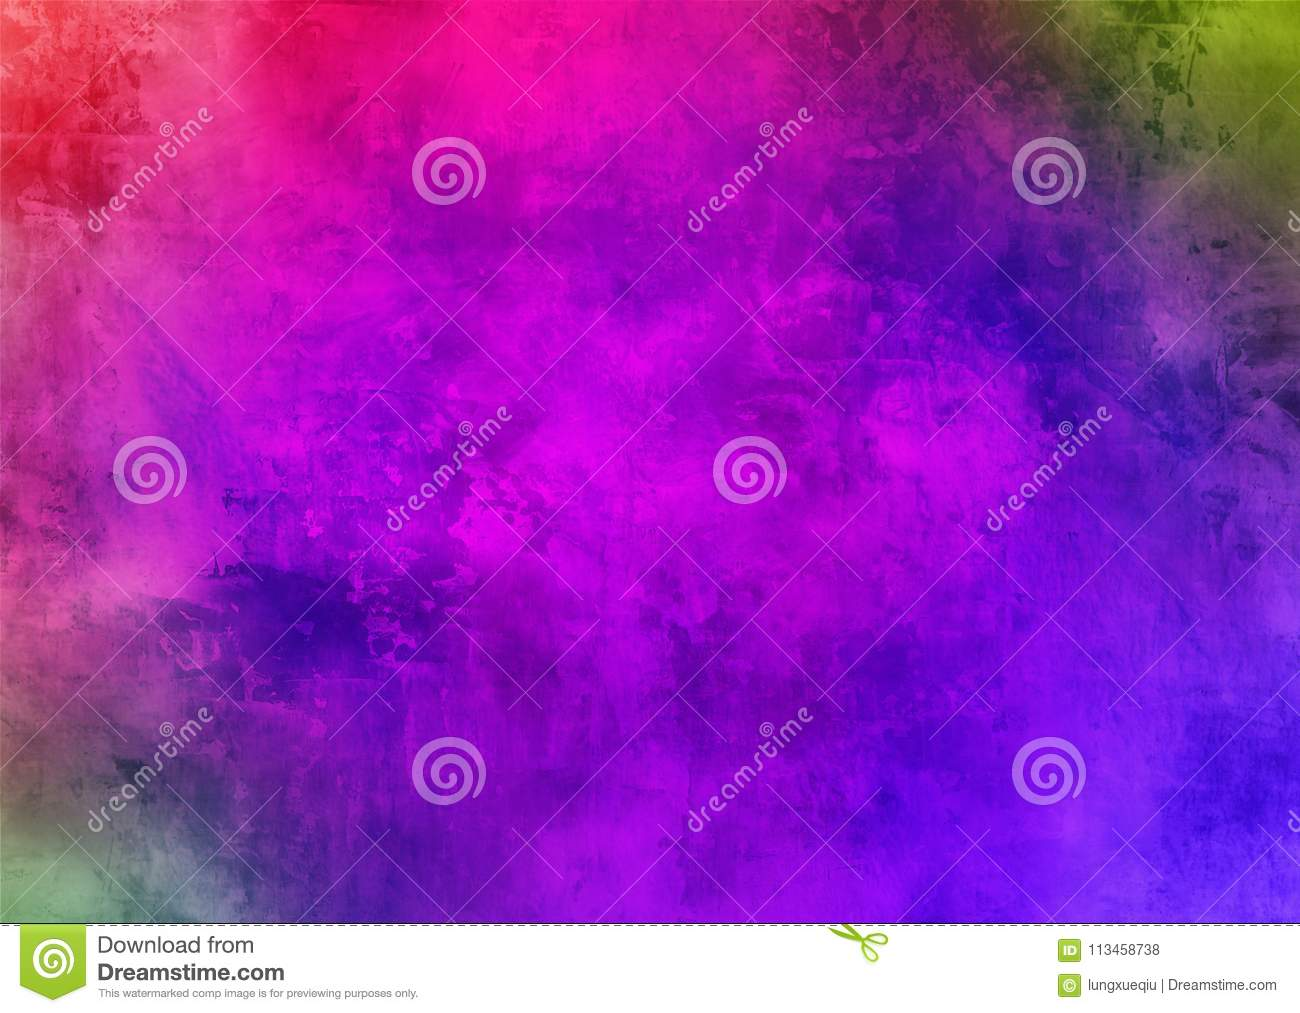 Dark Purple Violet Mystic Old Distorted Grunge Dust Smokey Abstract Pattern Texture Beautiful Background Wallpaper